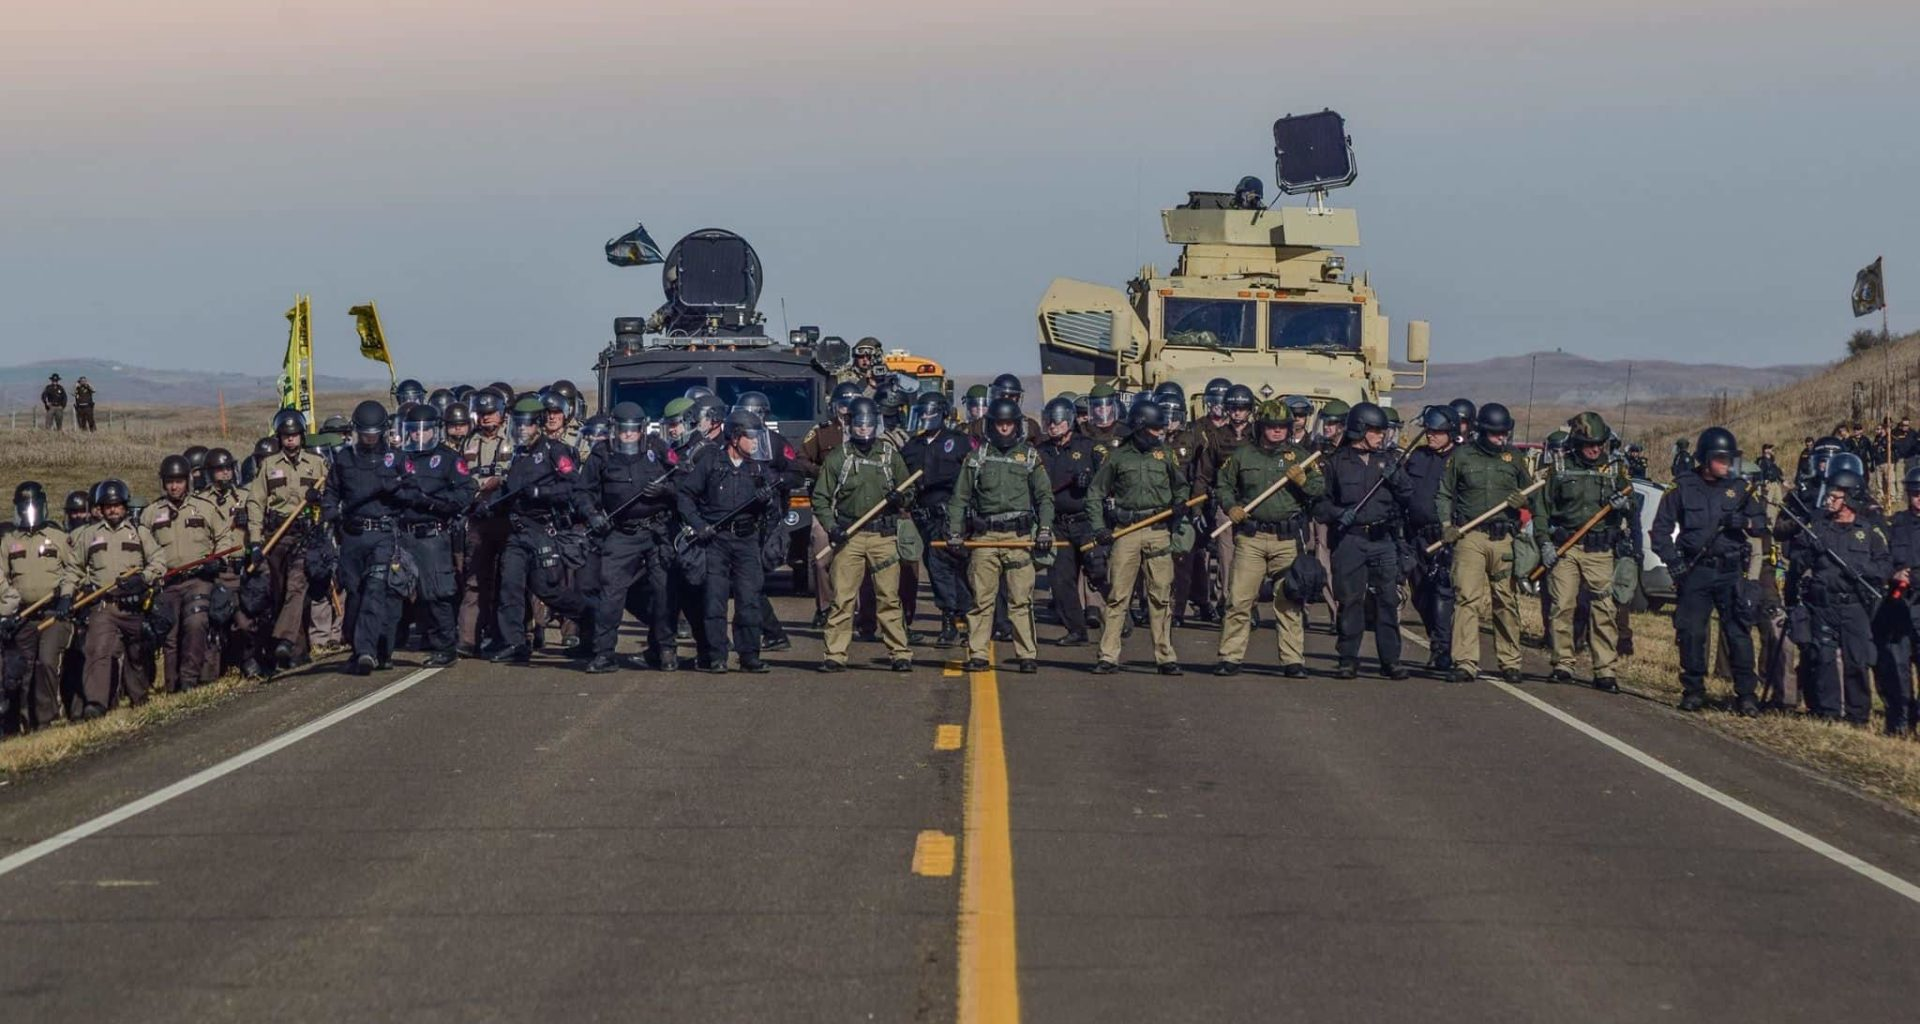 Trump Administration Has Decided To Treat Native Americans, Water Protectors As Terrorists